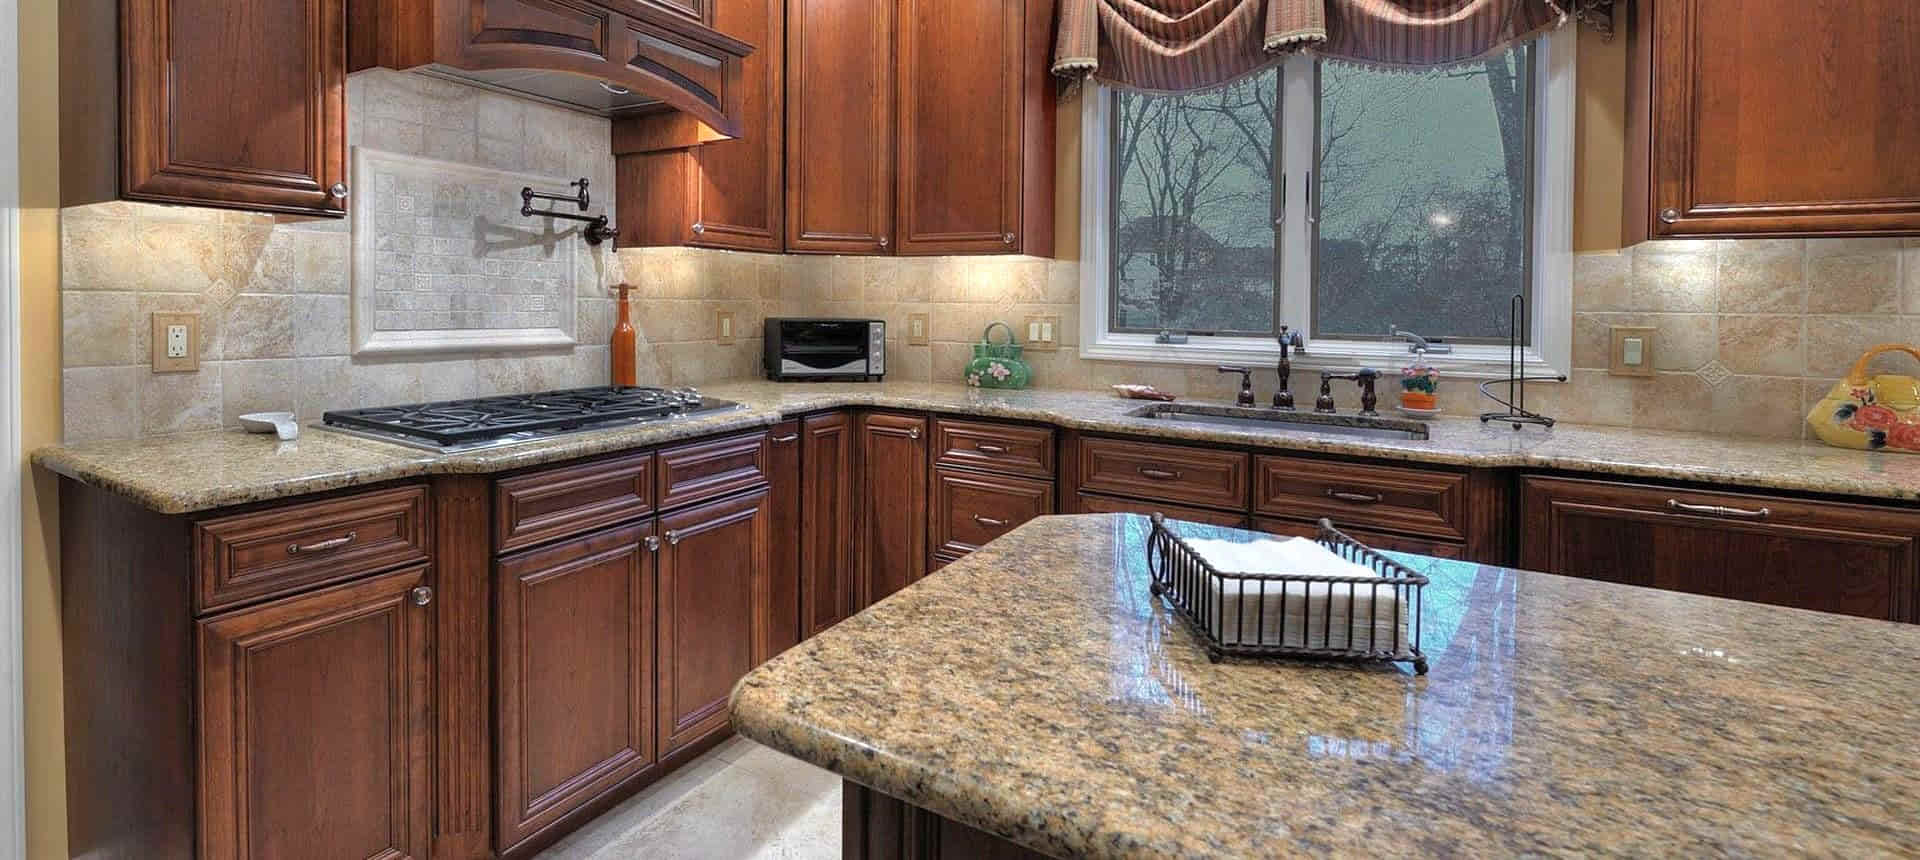 DL Stone Design, a granite, marble, and natural stone fabrication and installation company